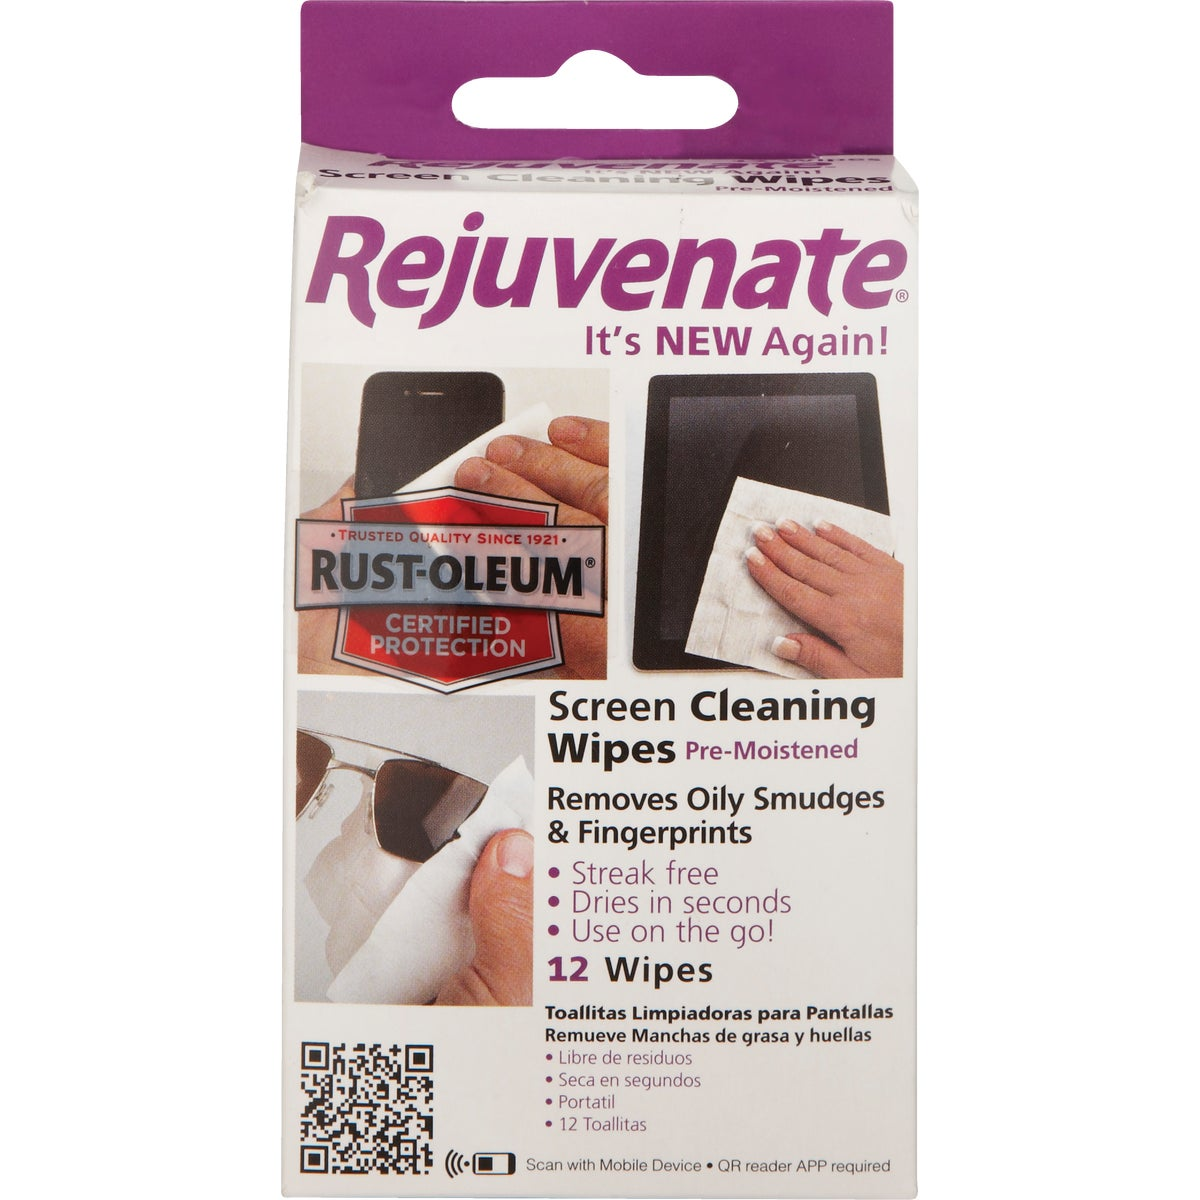 Rejuvenate Electronic Screen Cleaner Wipes, RJCST